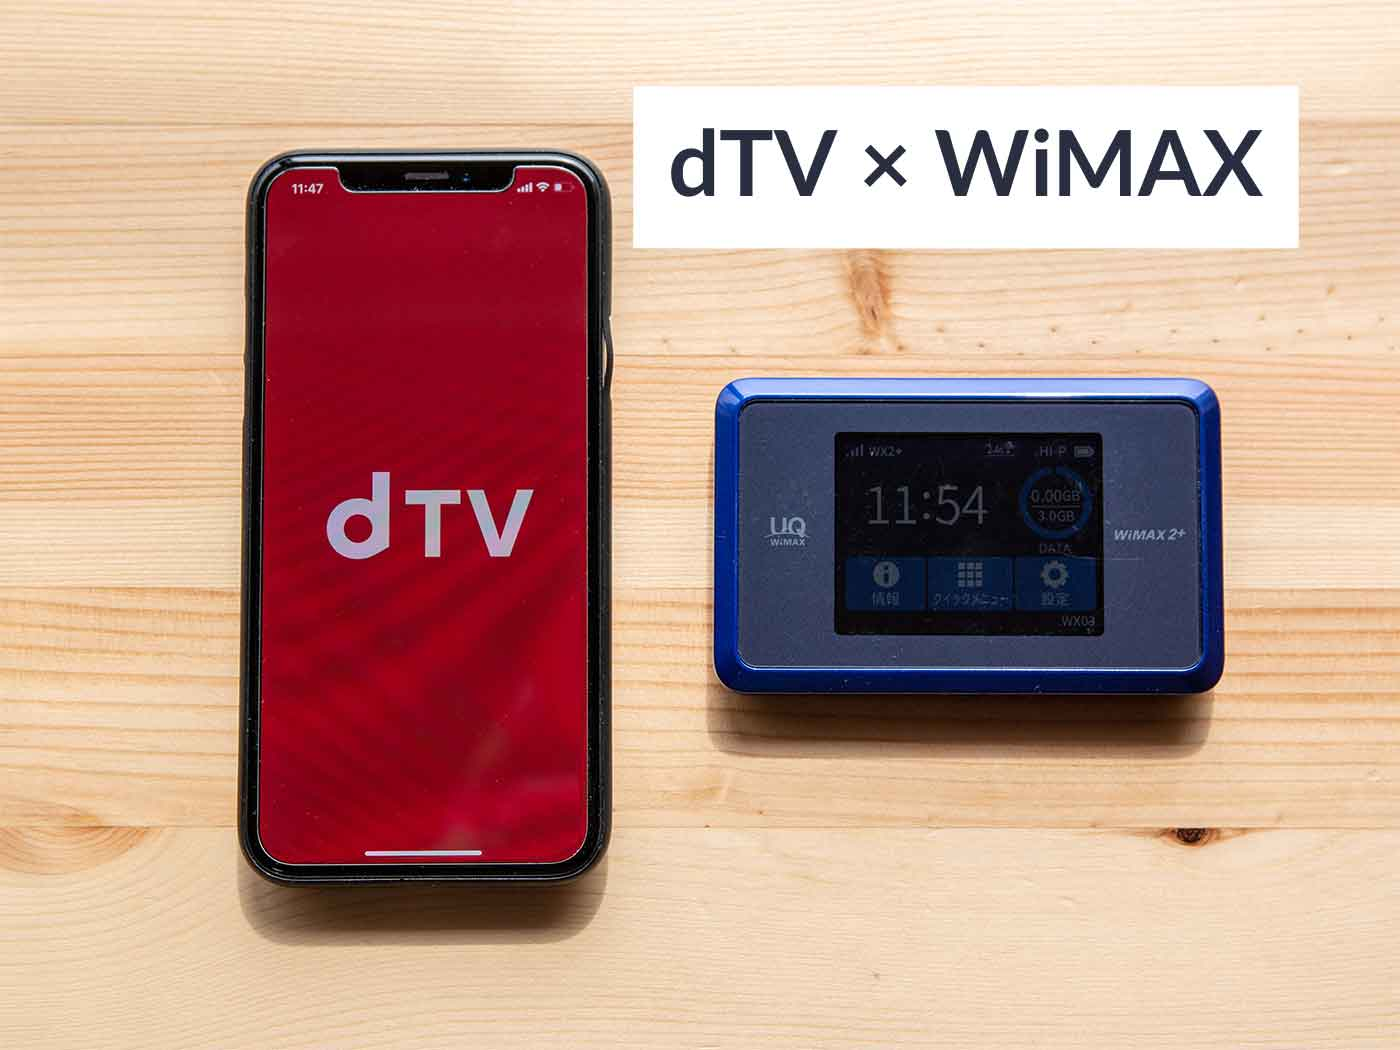 dTVとWiMAXのレビュー記事